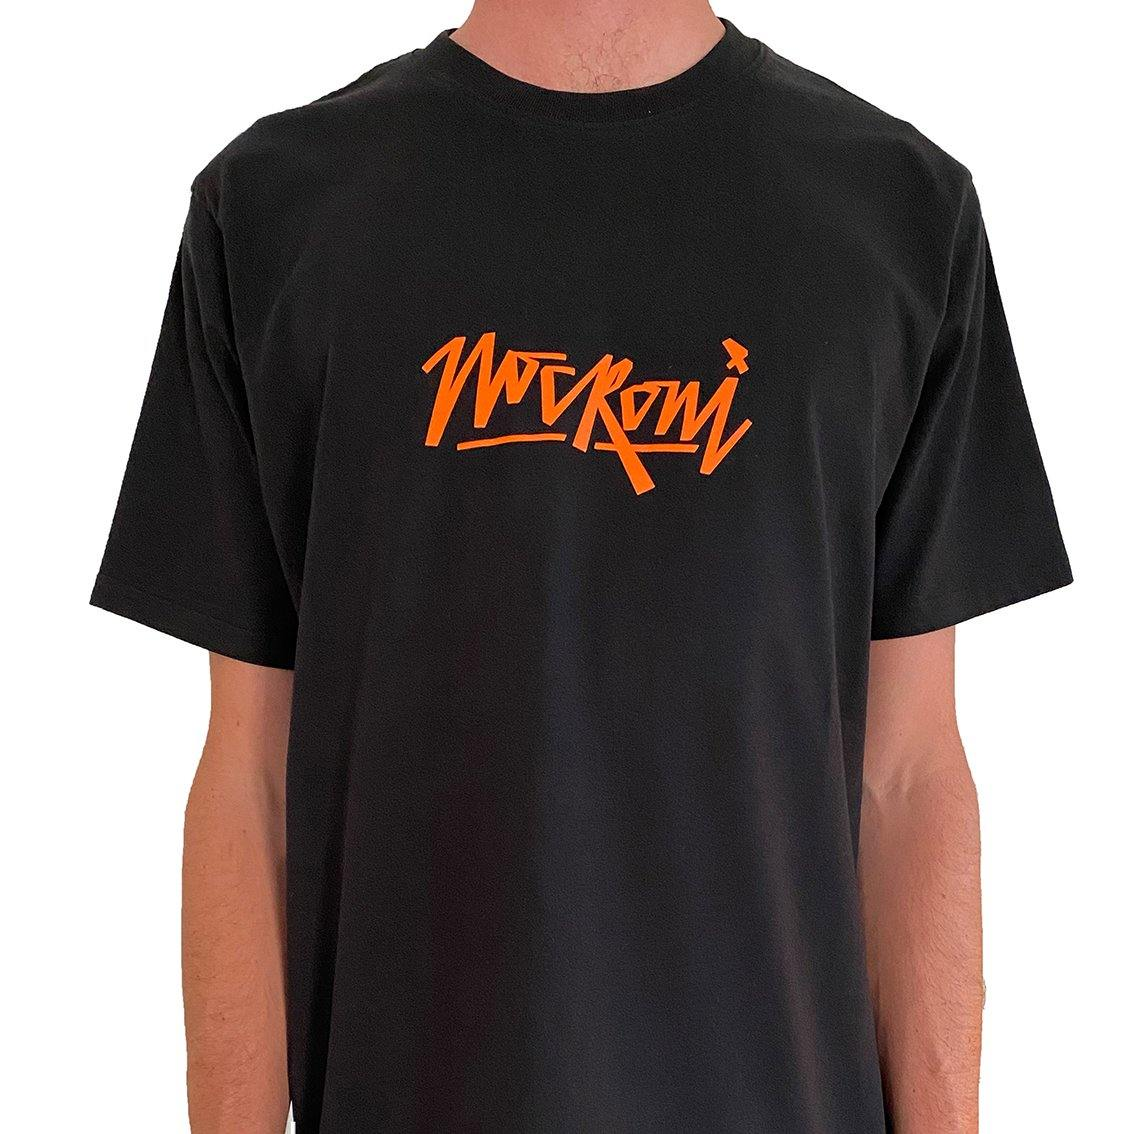 Nocroni Original Black/Orange UNISEX - Nocroni